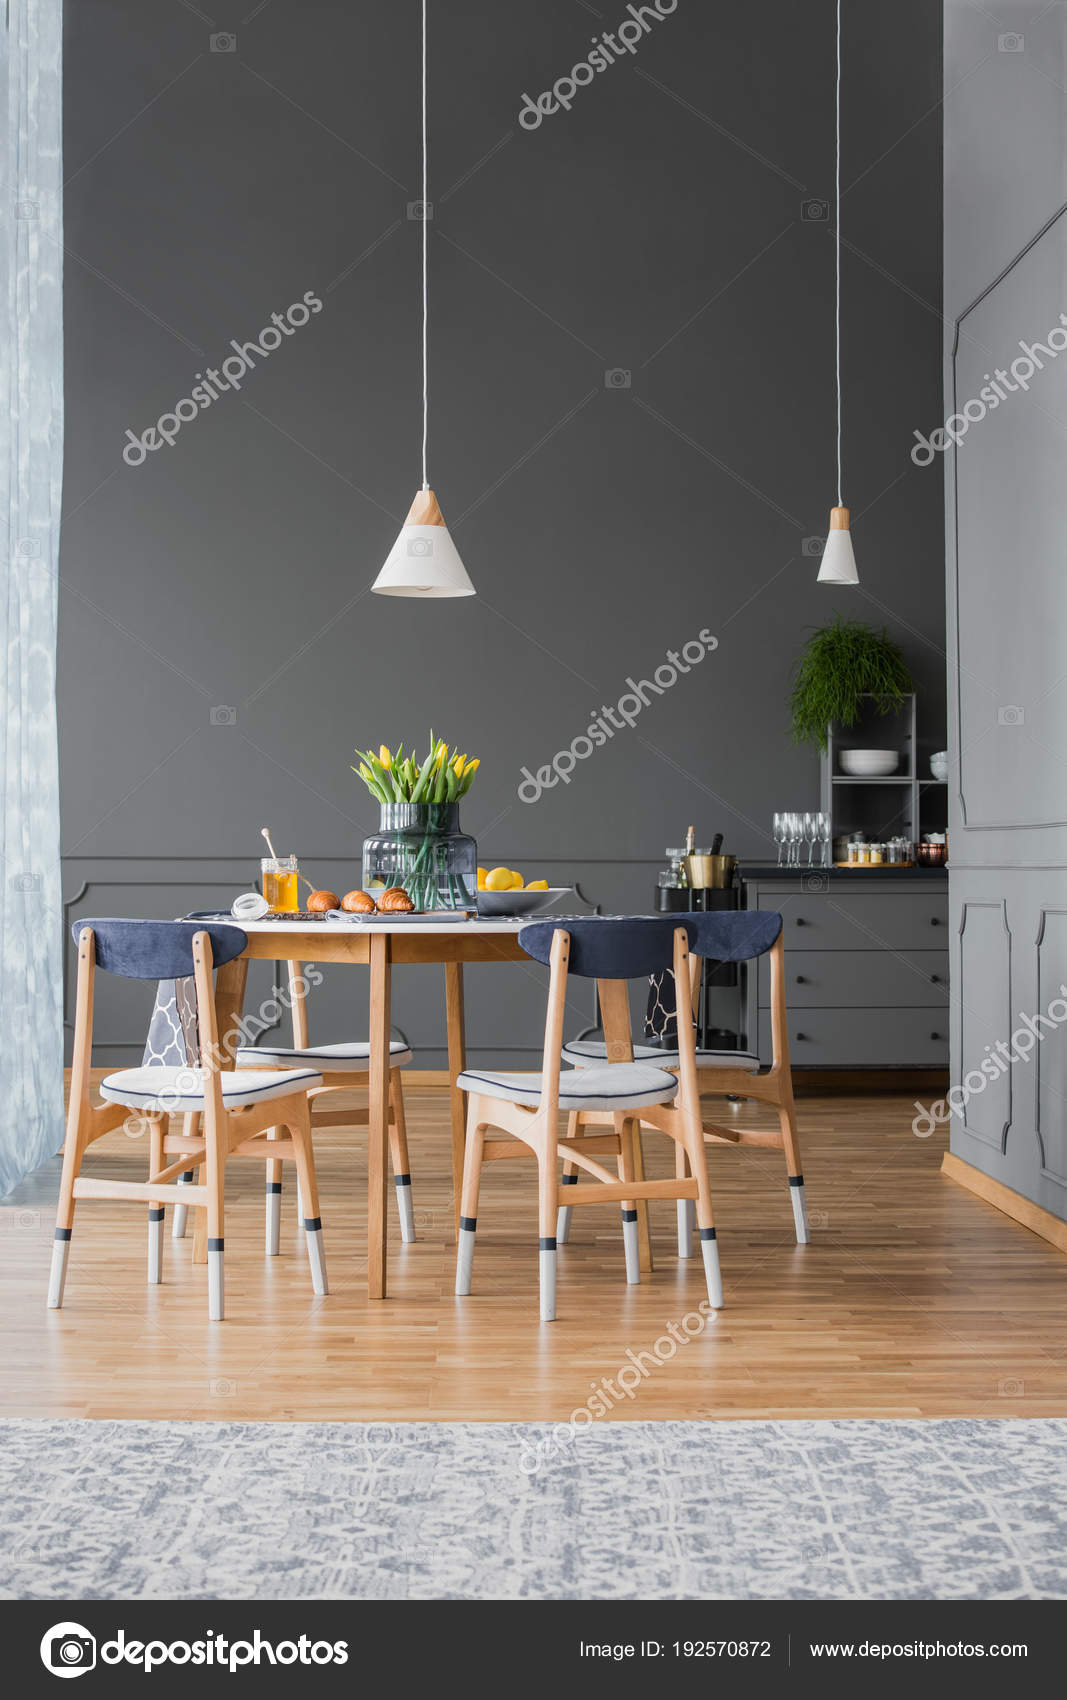 Pendant Light Above Dining Table Stock Photo Photographeeeu - Light above kitchen table